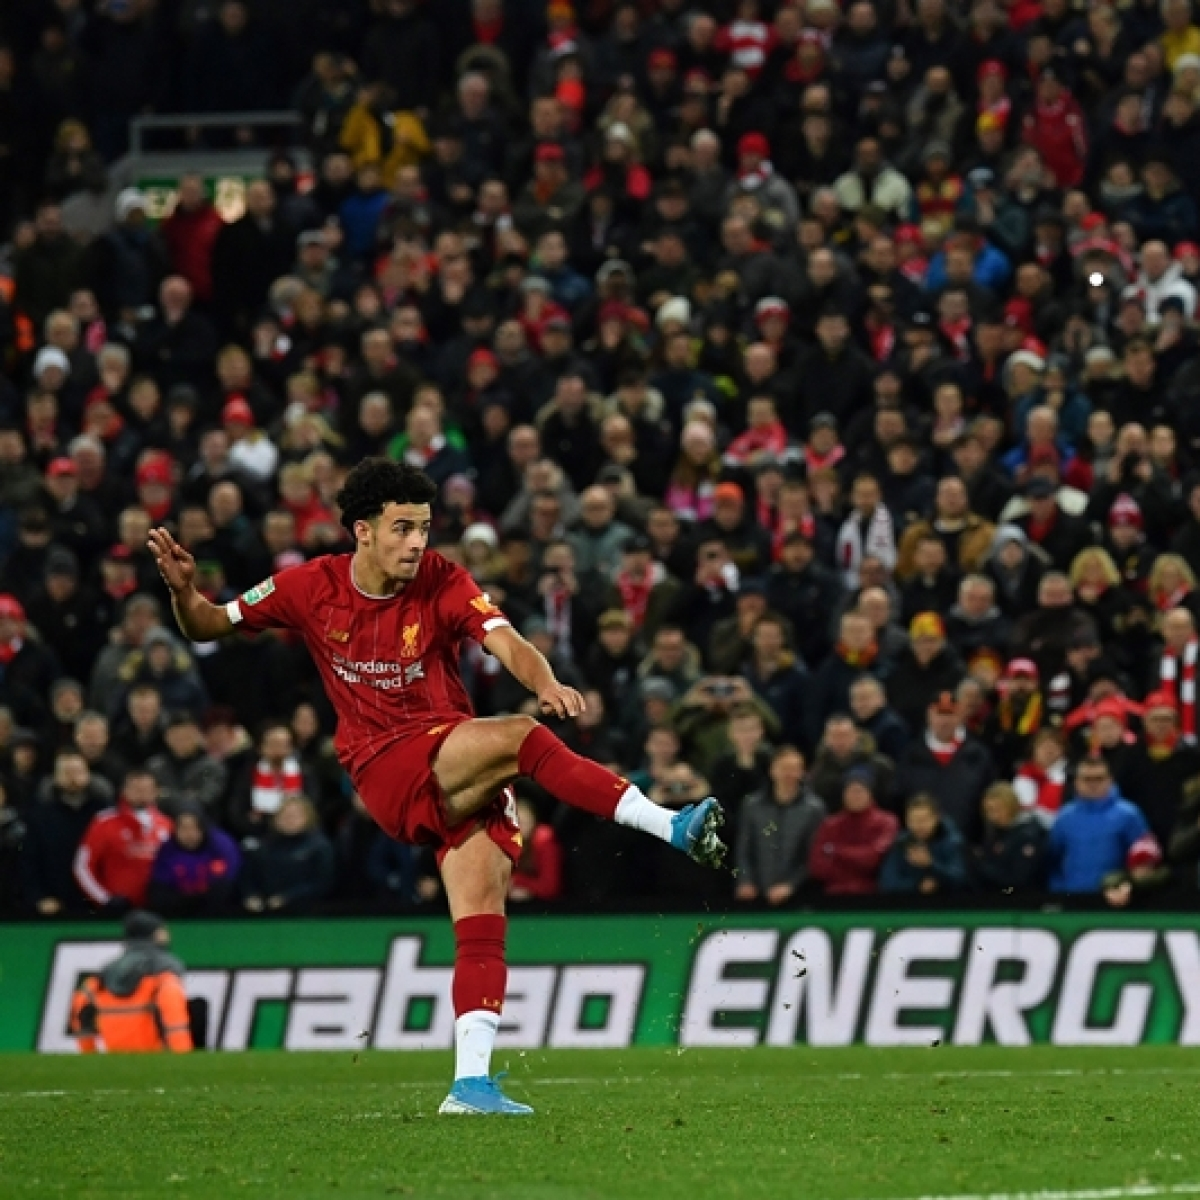 Liverpool beat Arsenal in an Anfield thriller that witnessed 19 goals